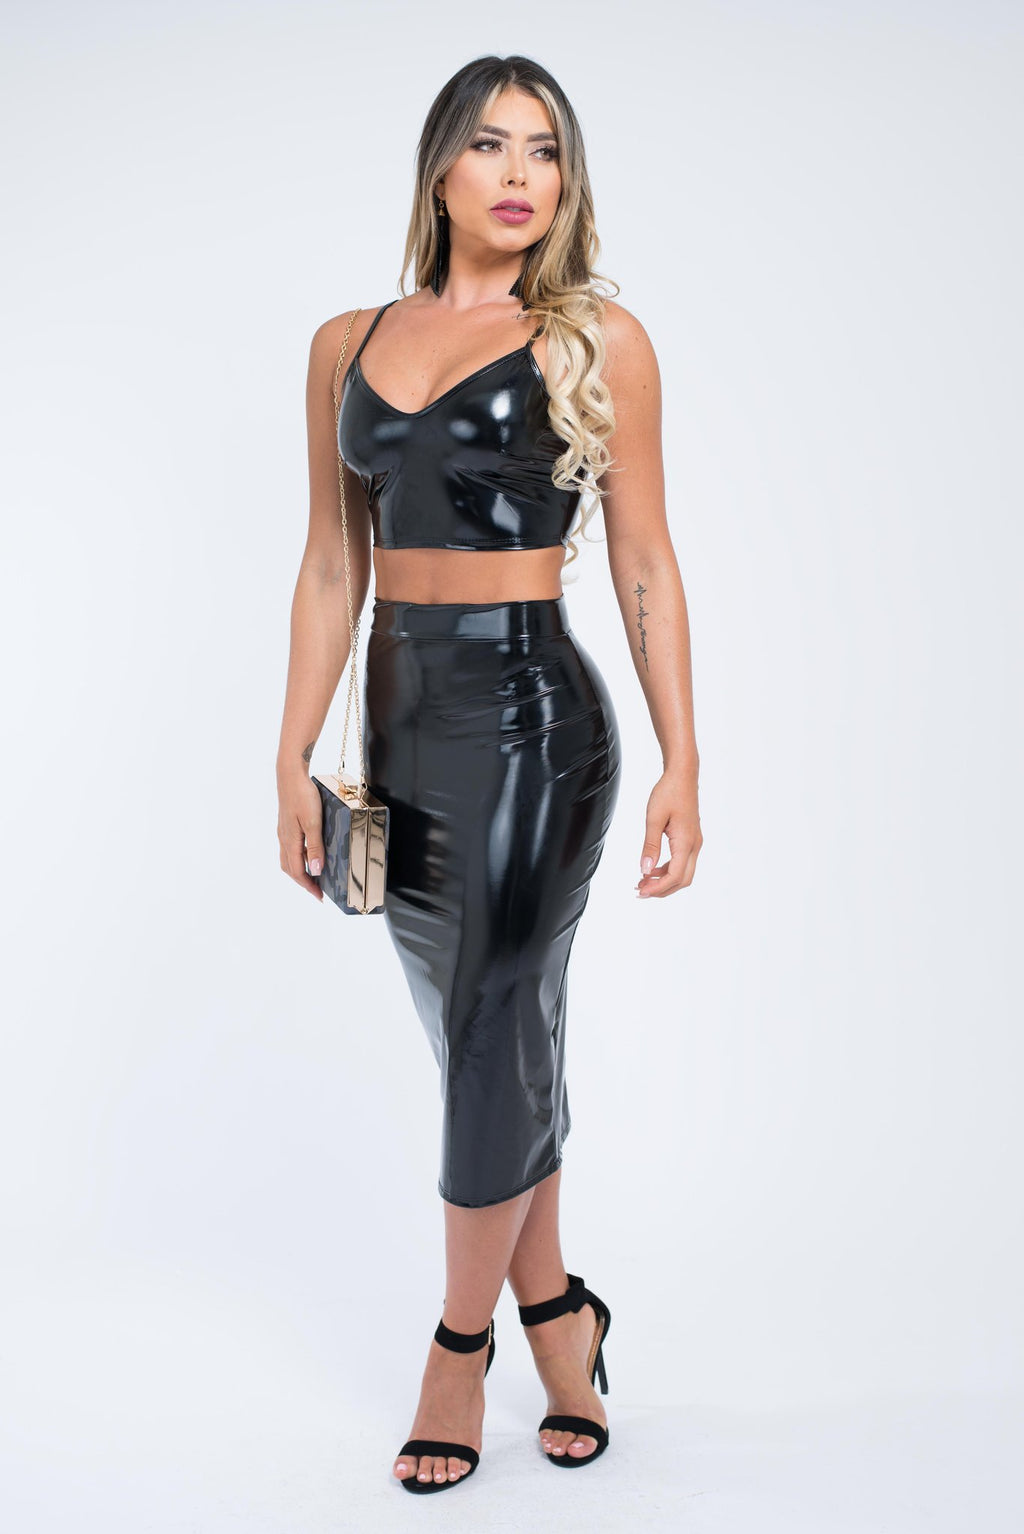 Black Latex Pencil Skirt Set - GLISTENSTYLES